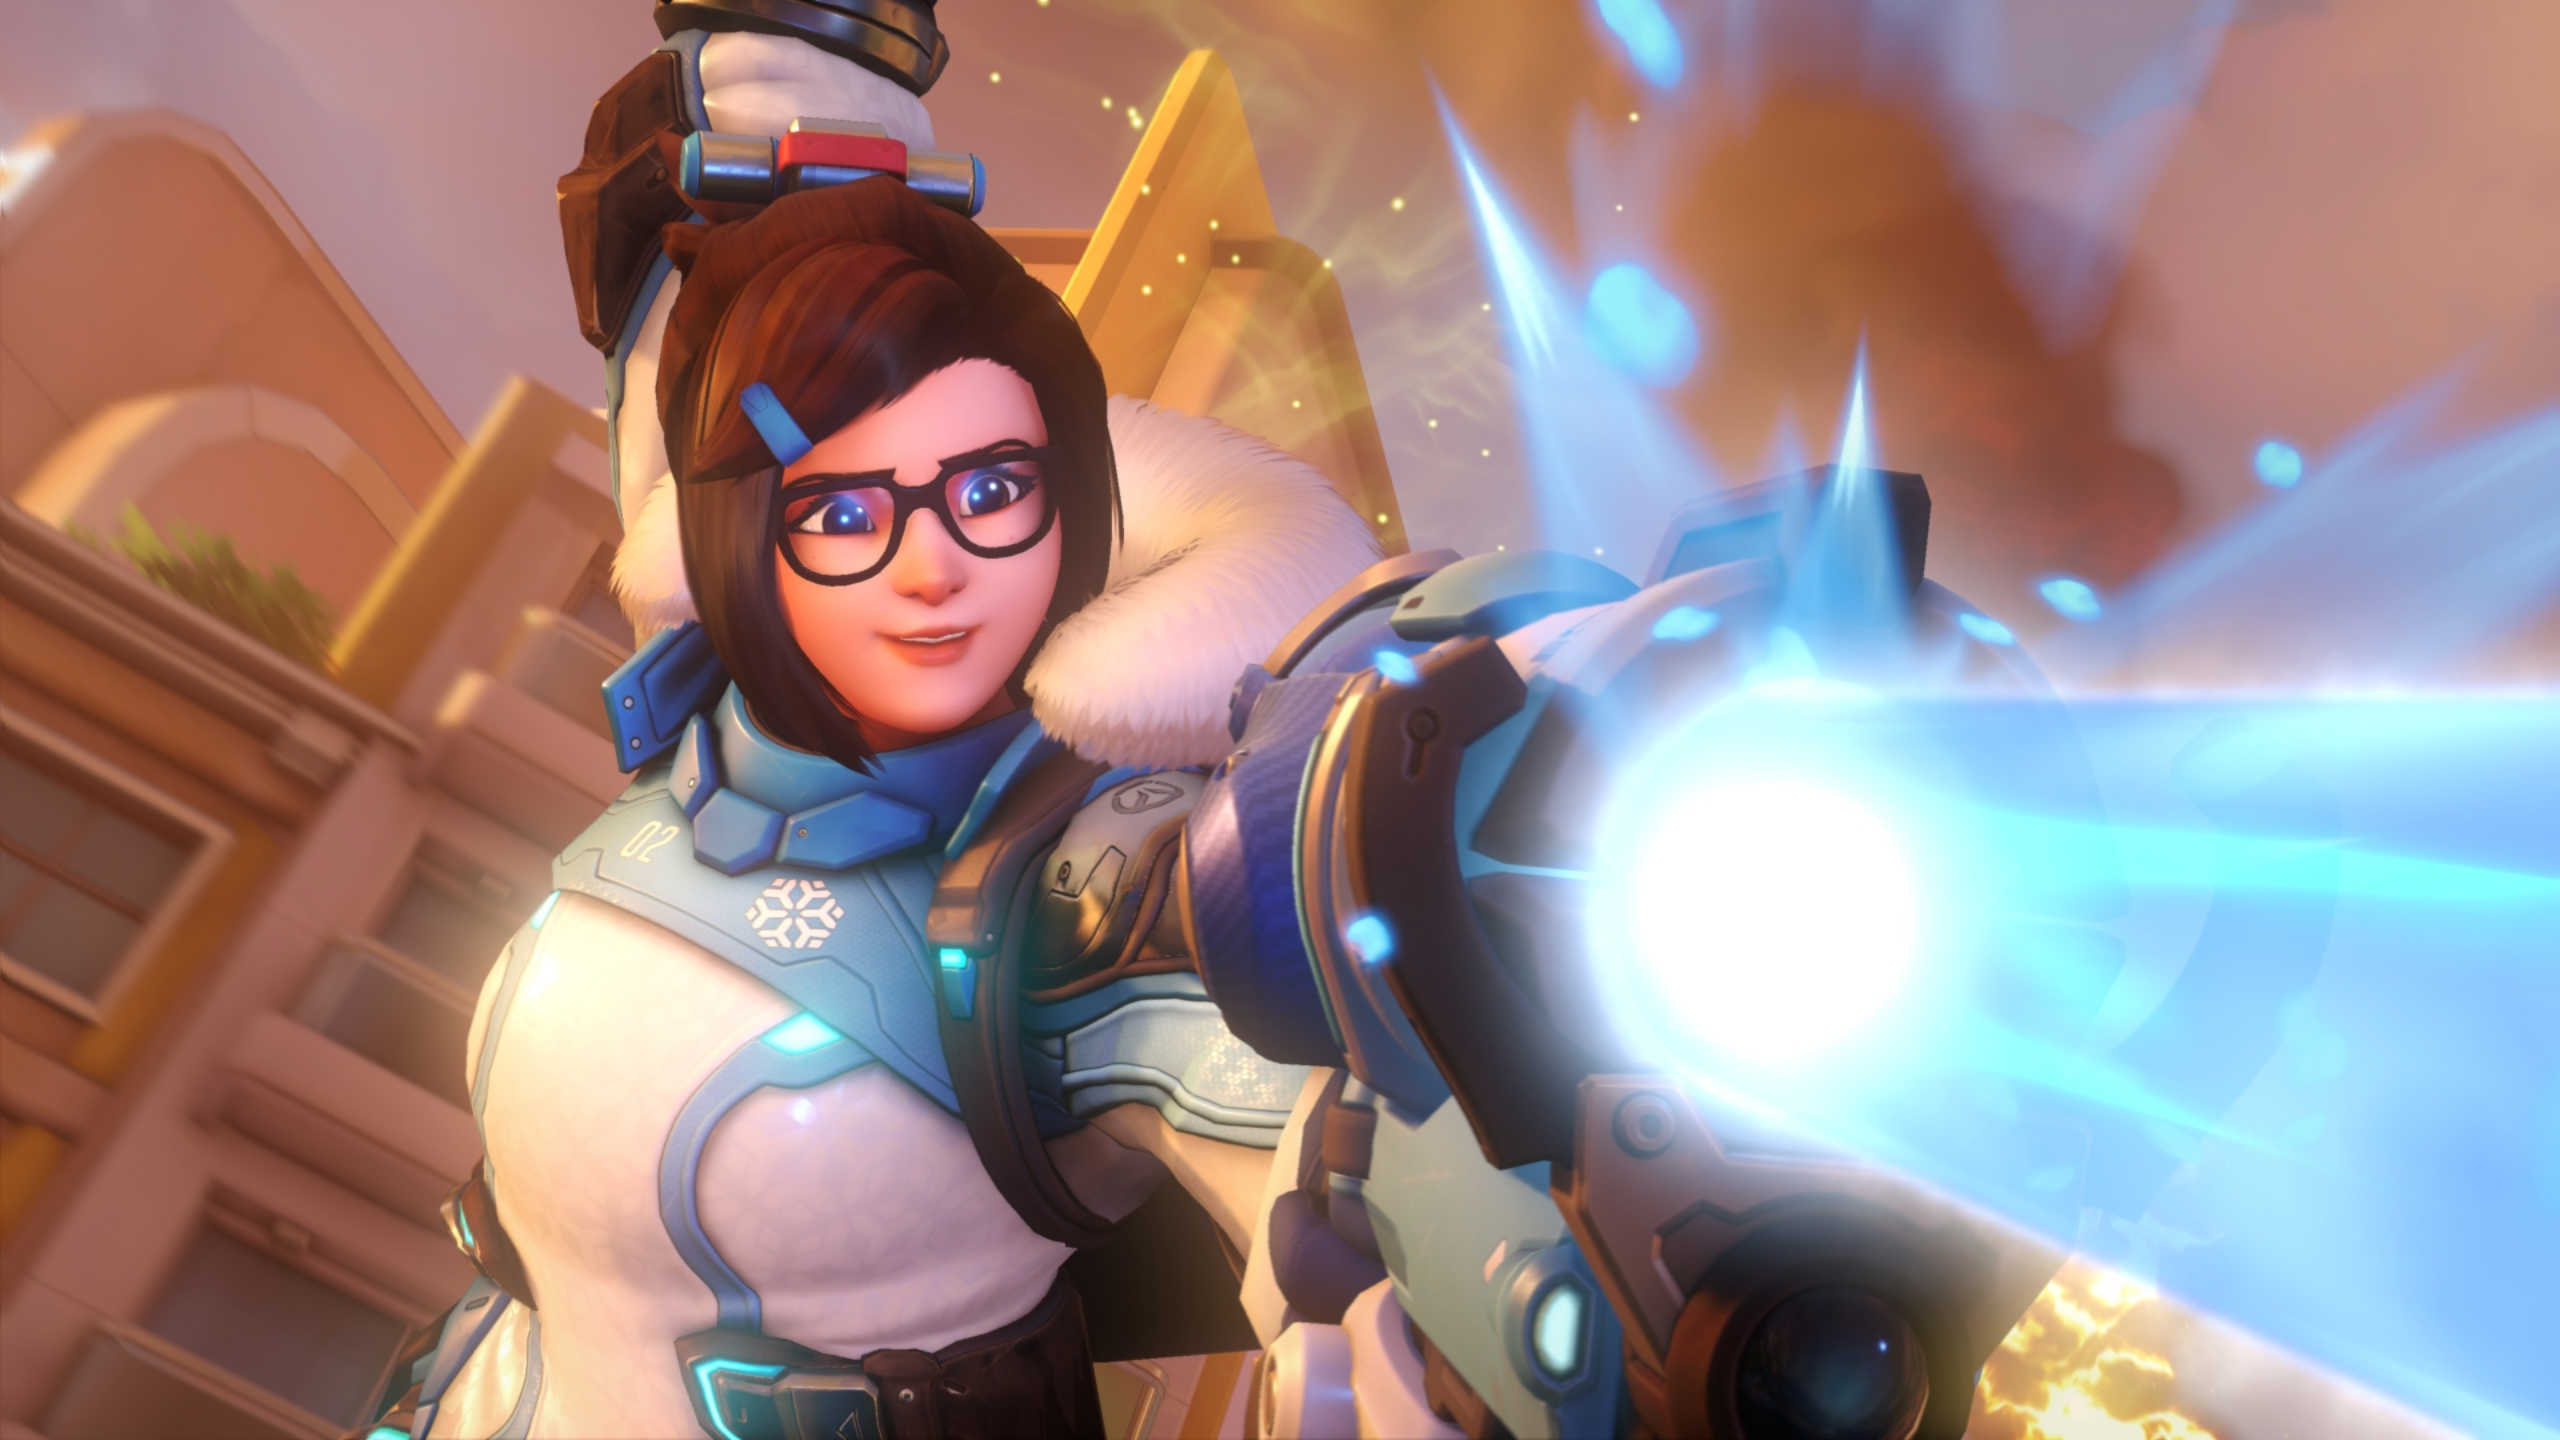 Soldier From Overwatch Wallpaper Overwatch From